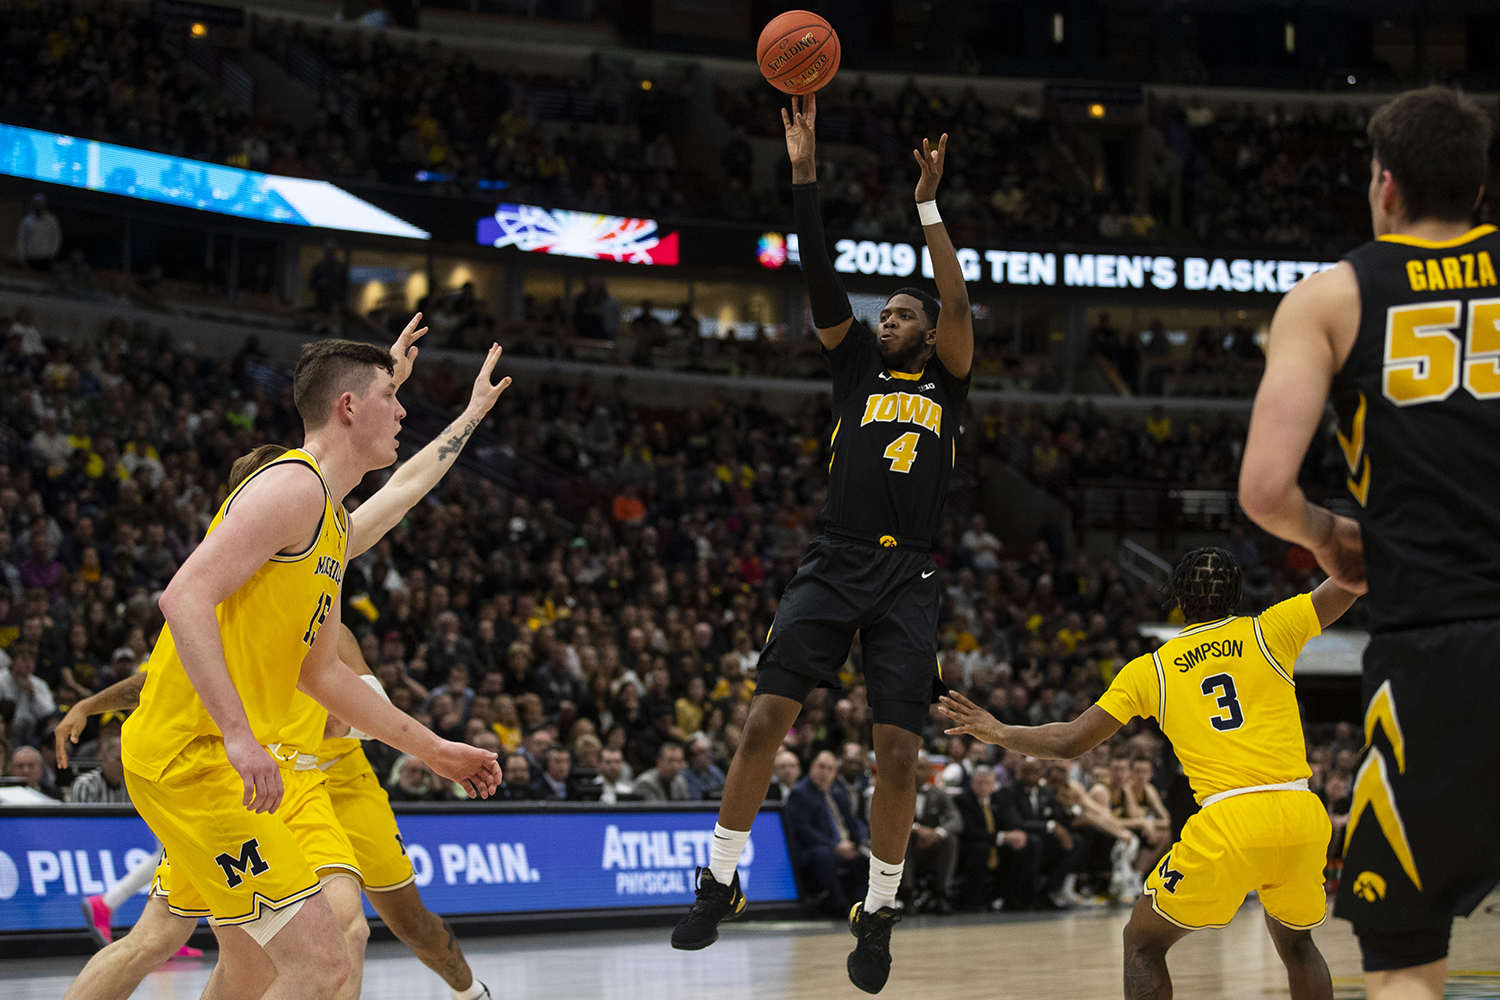 Iowa+guard+Isaiah+Moss+attempts+a+shot+during+the+Iowa%2FMichigan+Big+Ten+Tournament+men%27s+basketball+game+in+the+United+Center+in+Chicago+on+Friday%2C+March+15%2C+2019.+The+Wolverines+defeated+the+Hawkeyes%2C+74-53.+